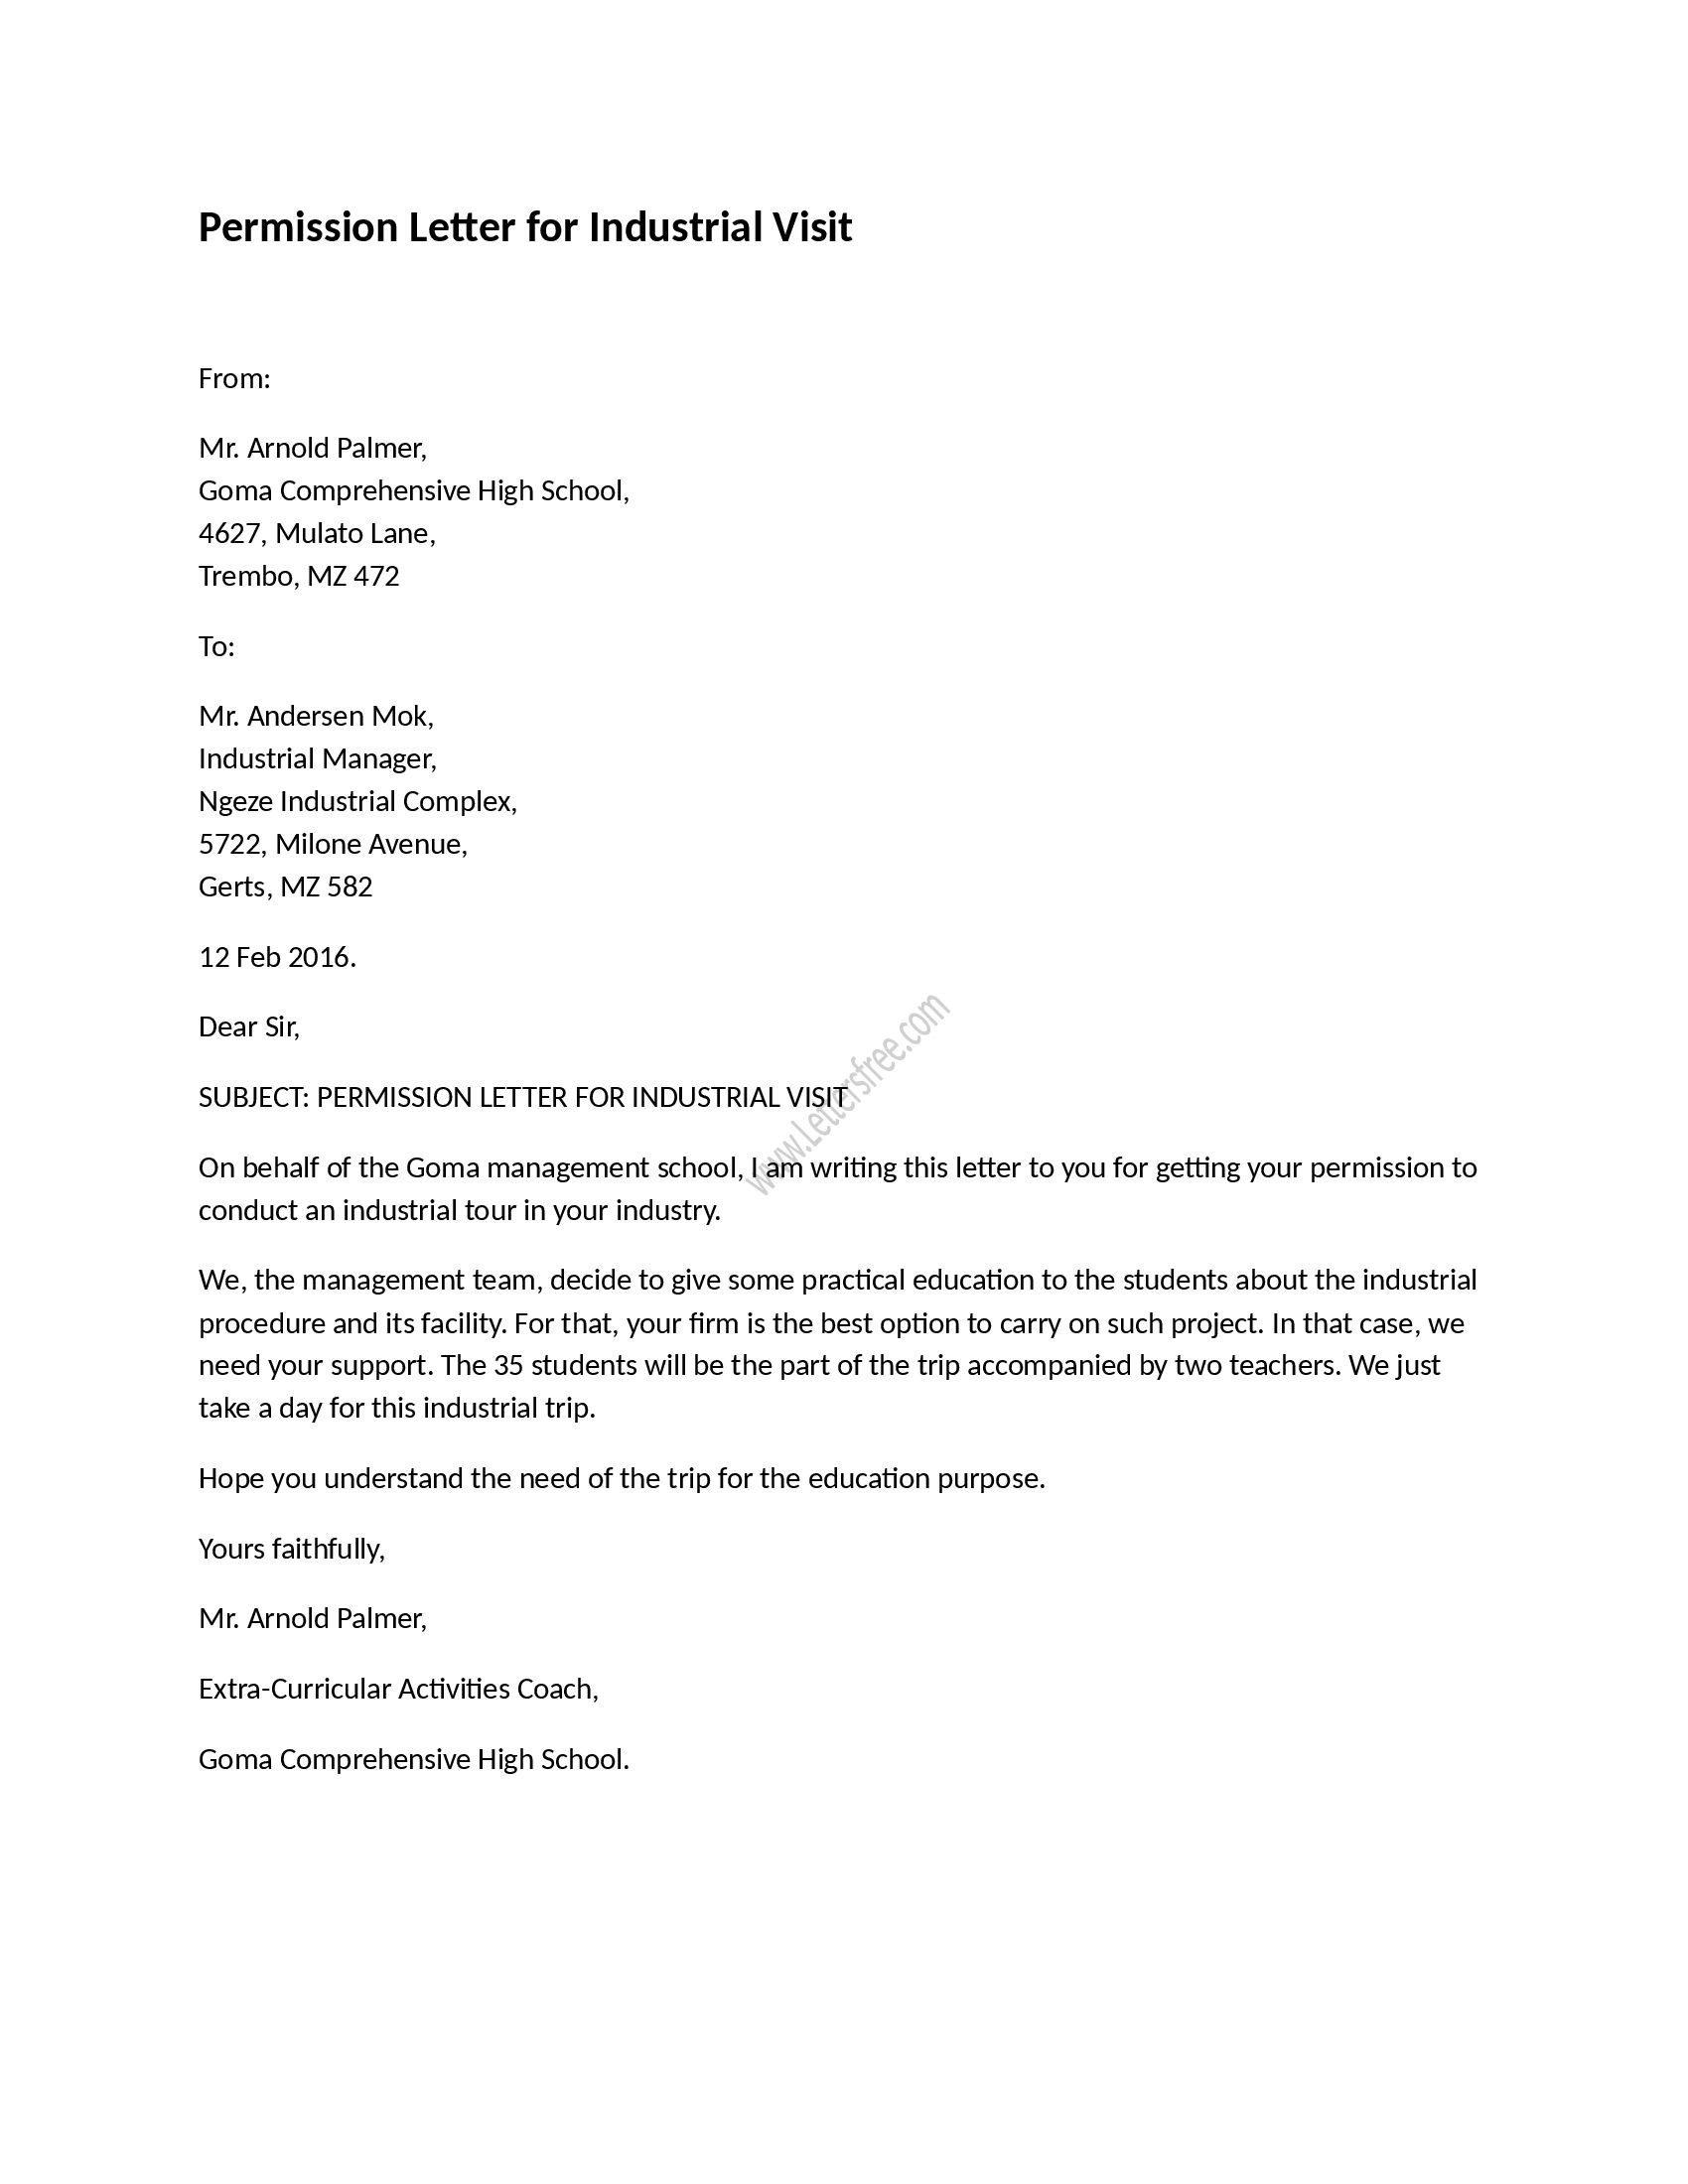 letter of permission to travel with grandchildren template Collection-Example of permission letter for industrial visit as its name says is written for seeking the permission of an industrial visit as a part of the 1-b